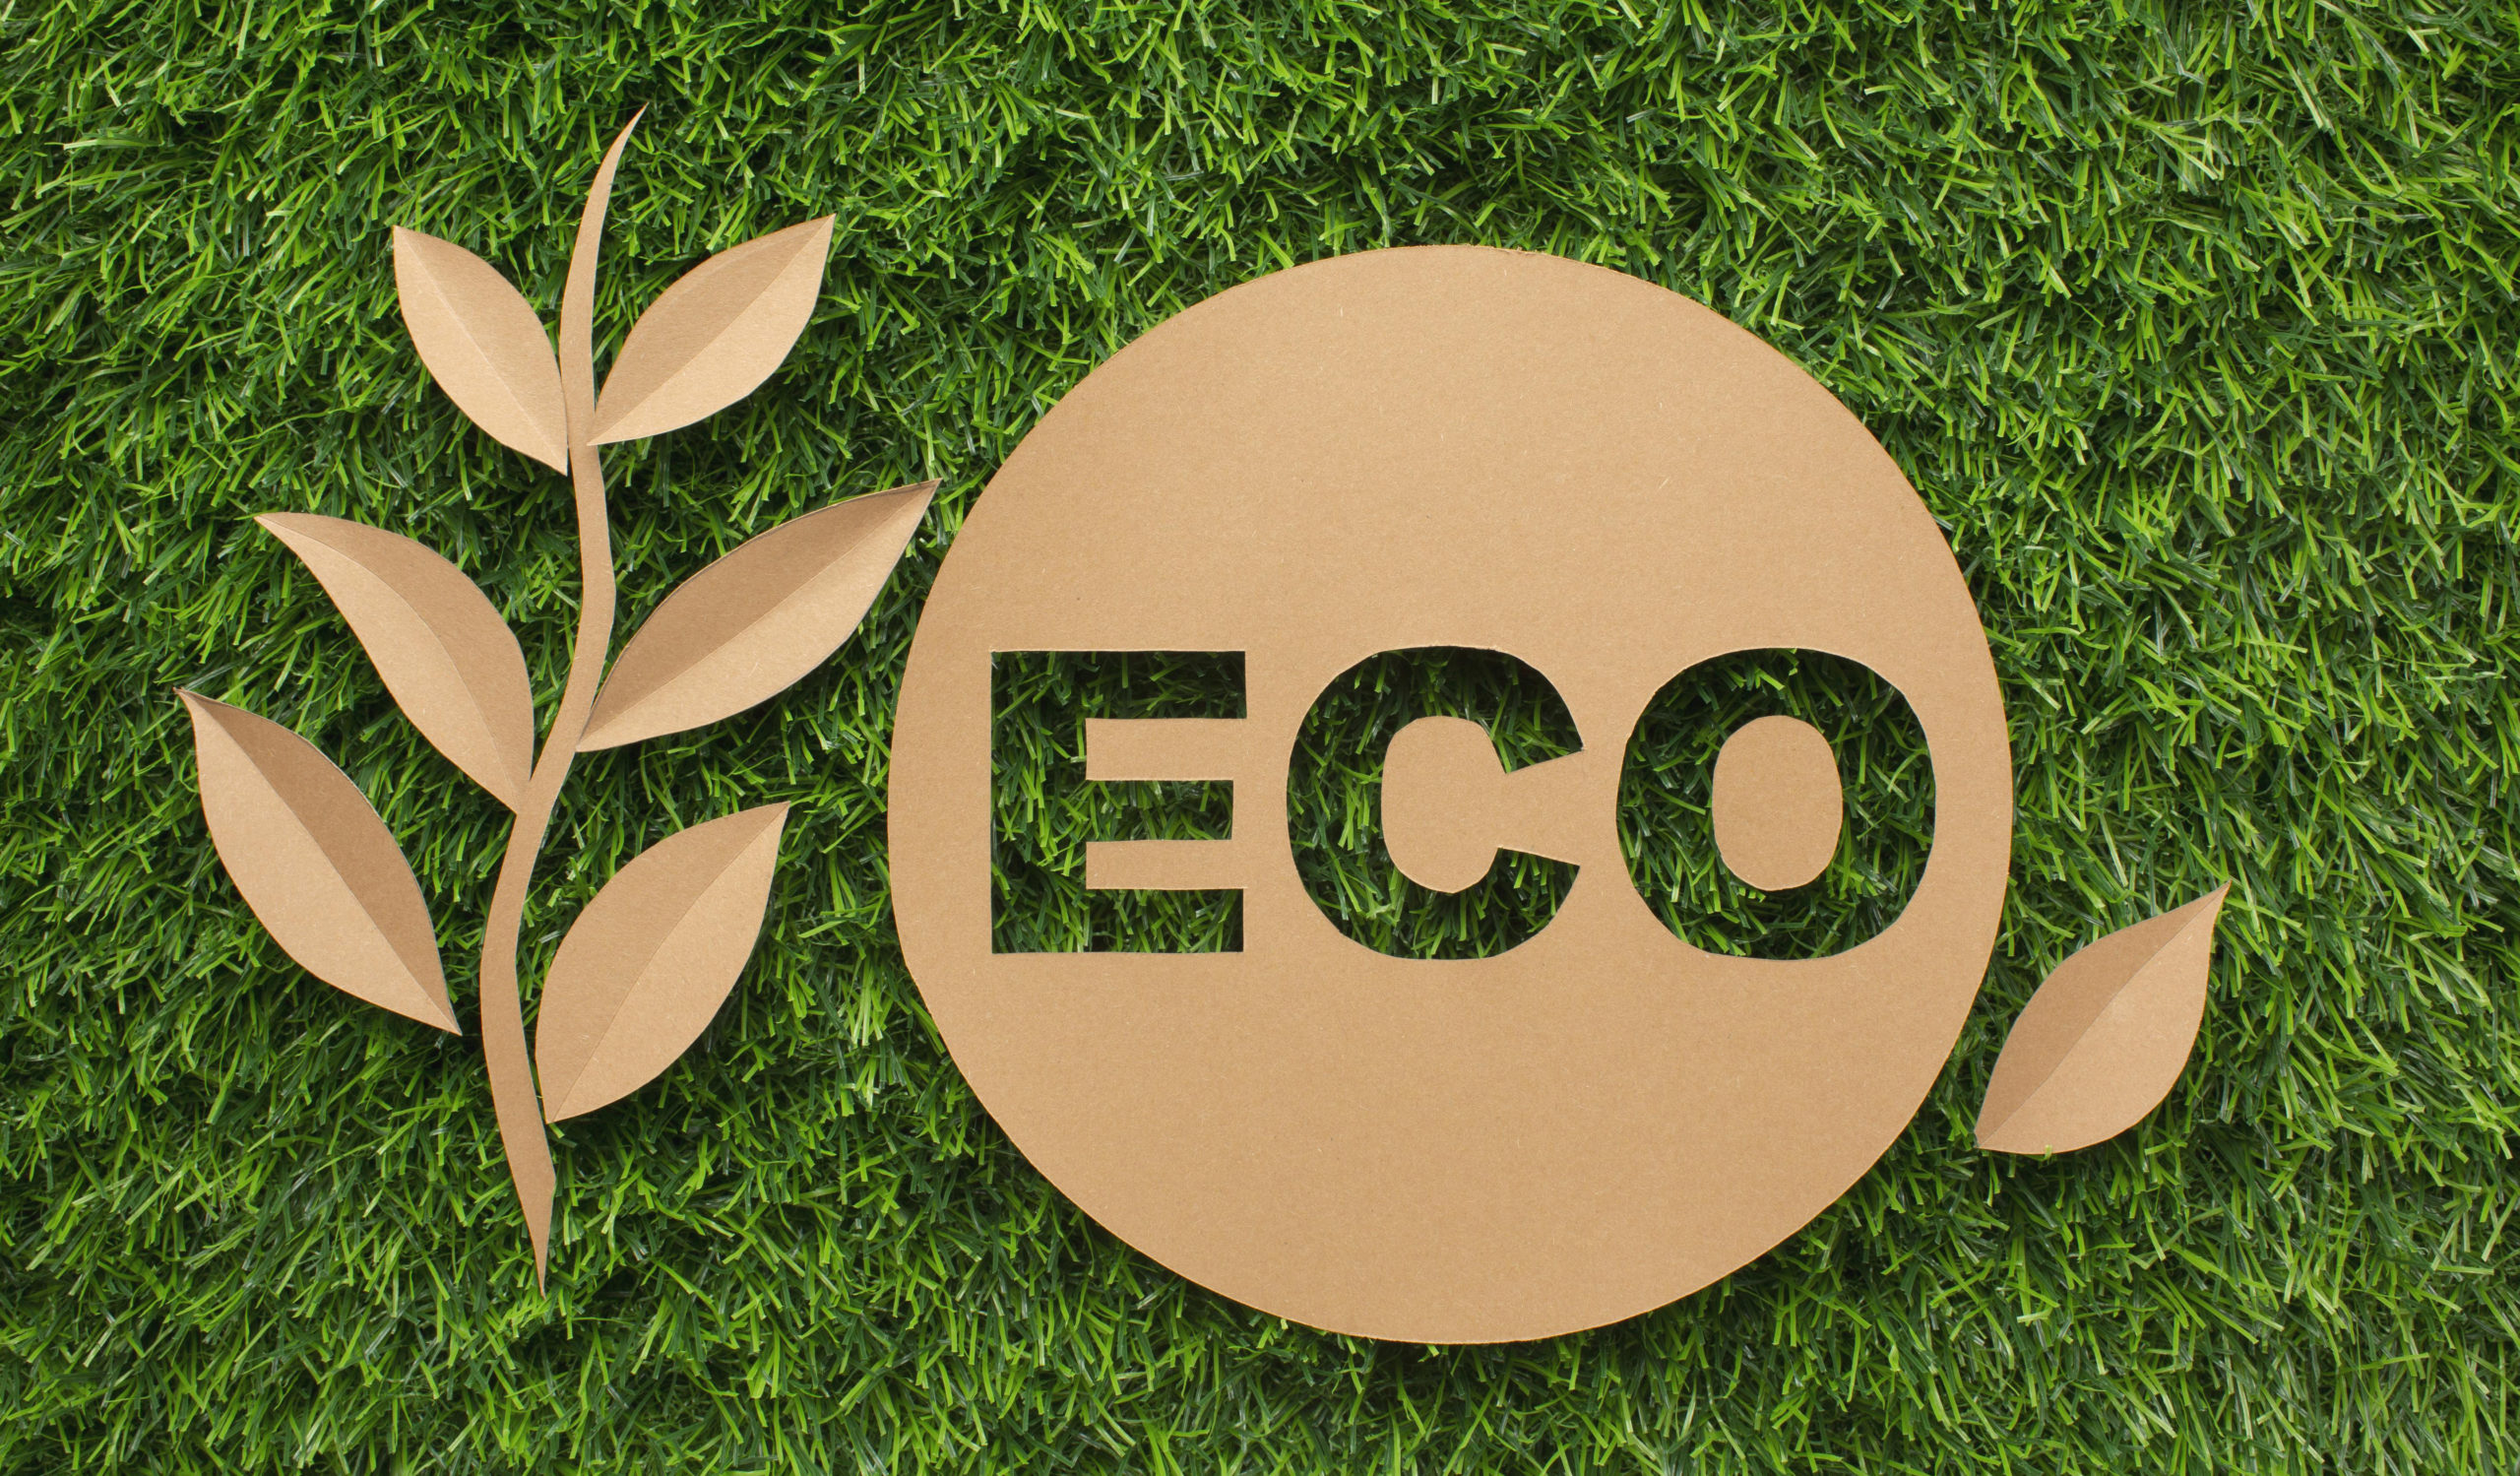 Ghid Eco